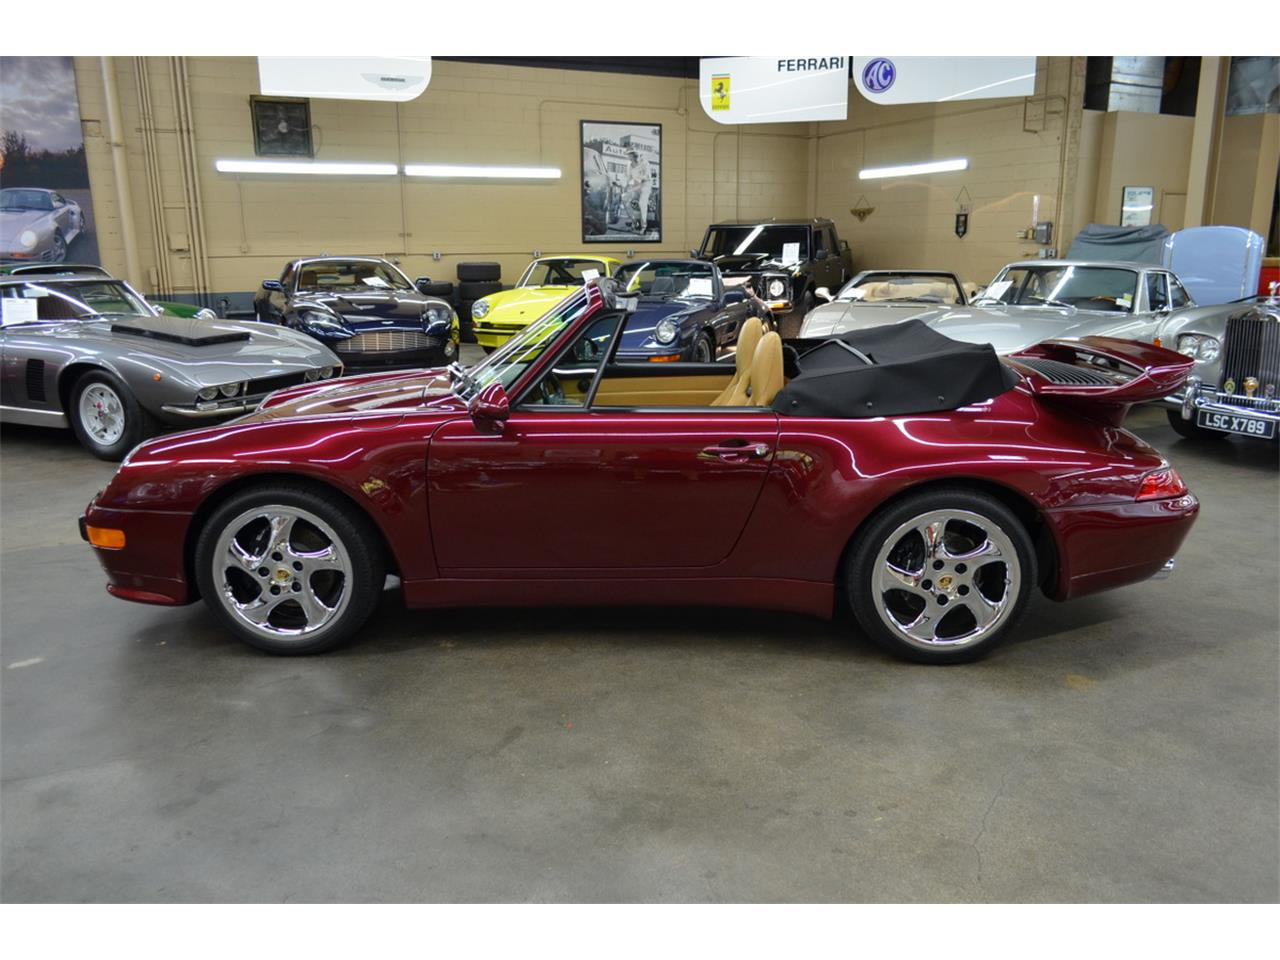 Large Picture of '97 Porsche 911 Carrera located in New York - $79,500.00 - QG4T